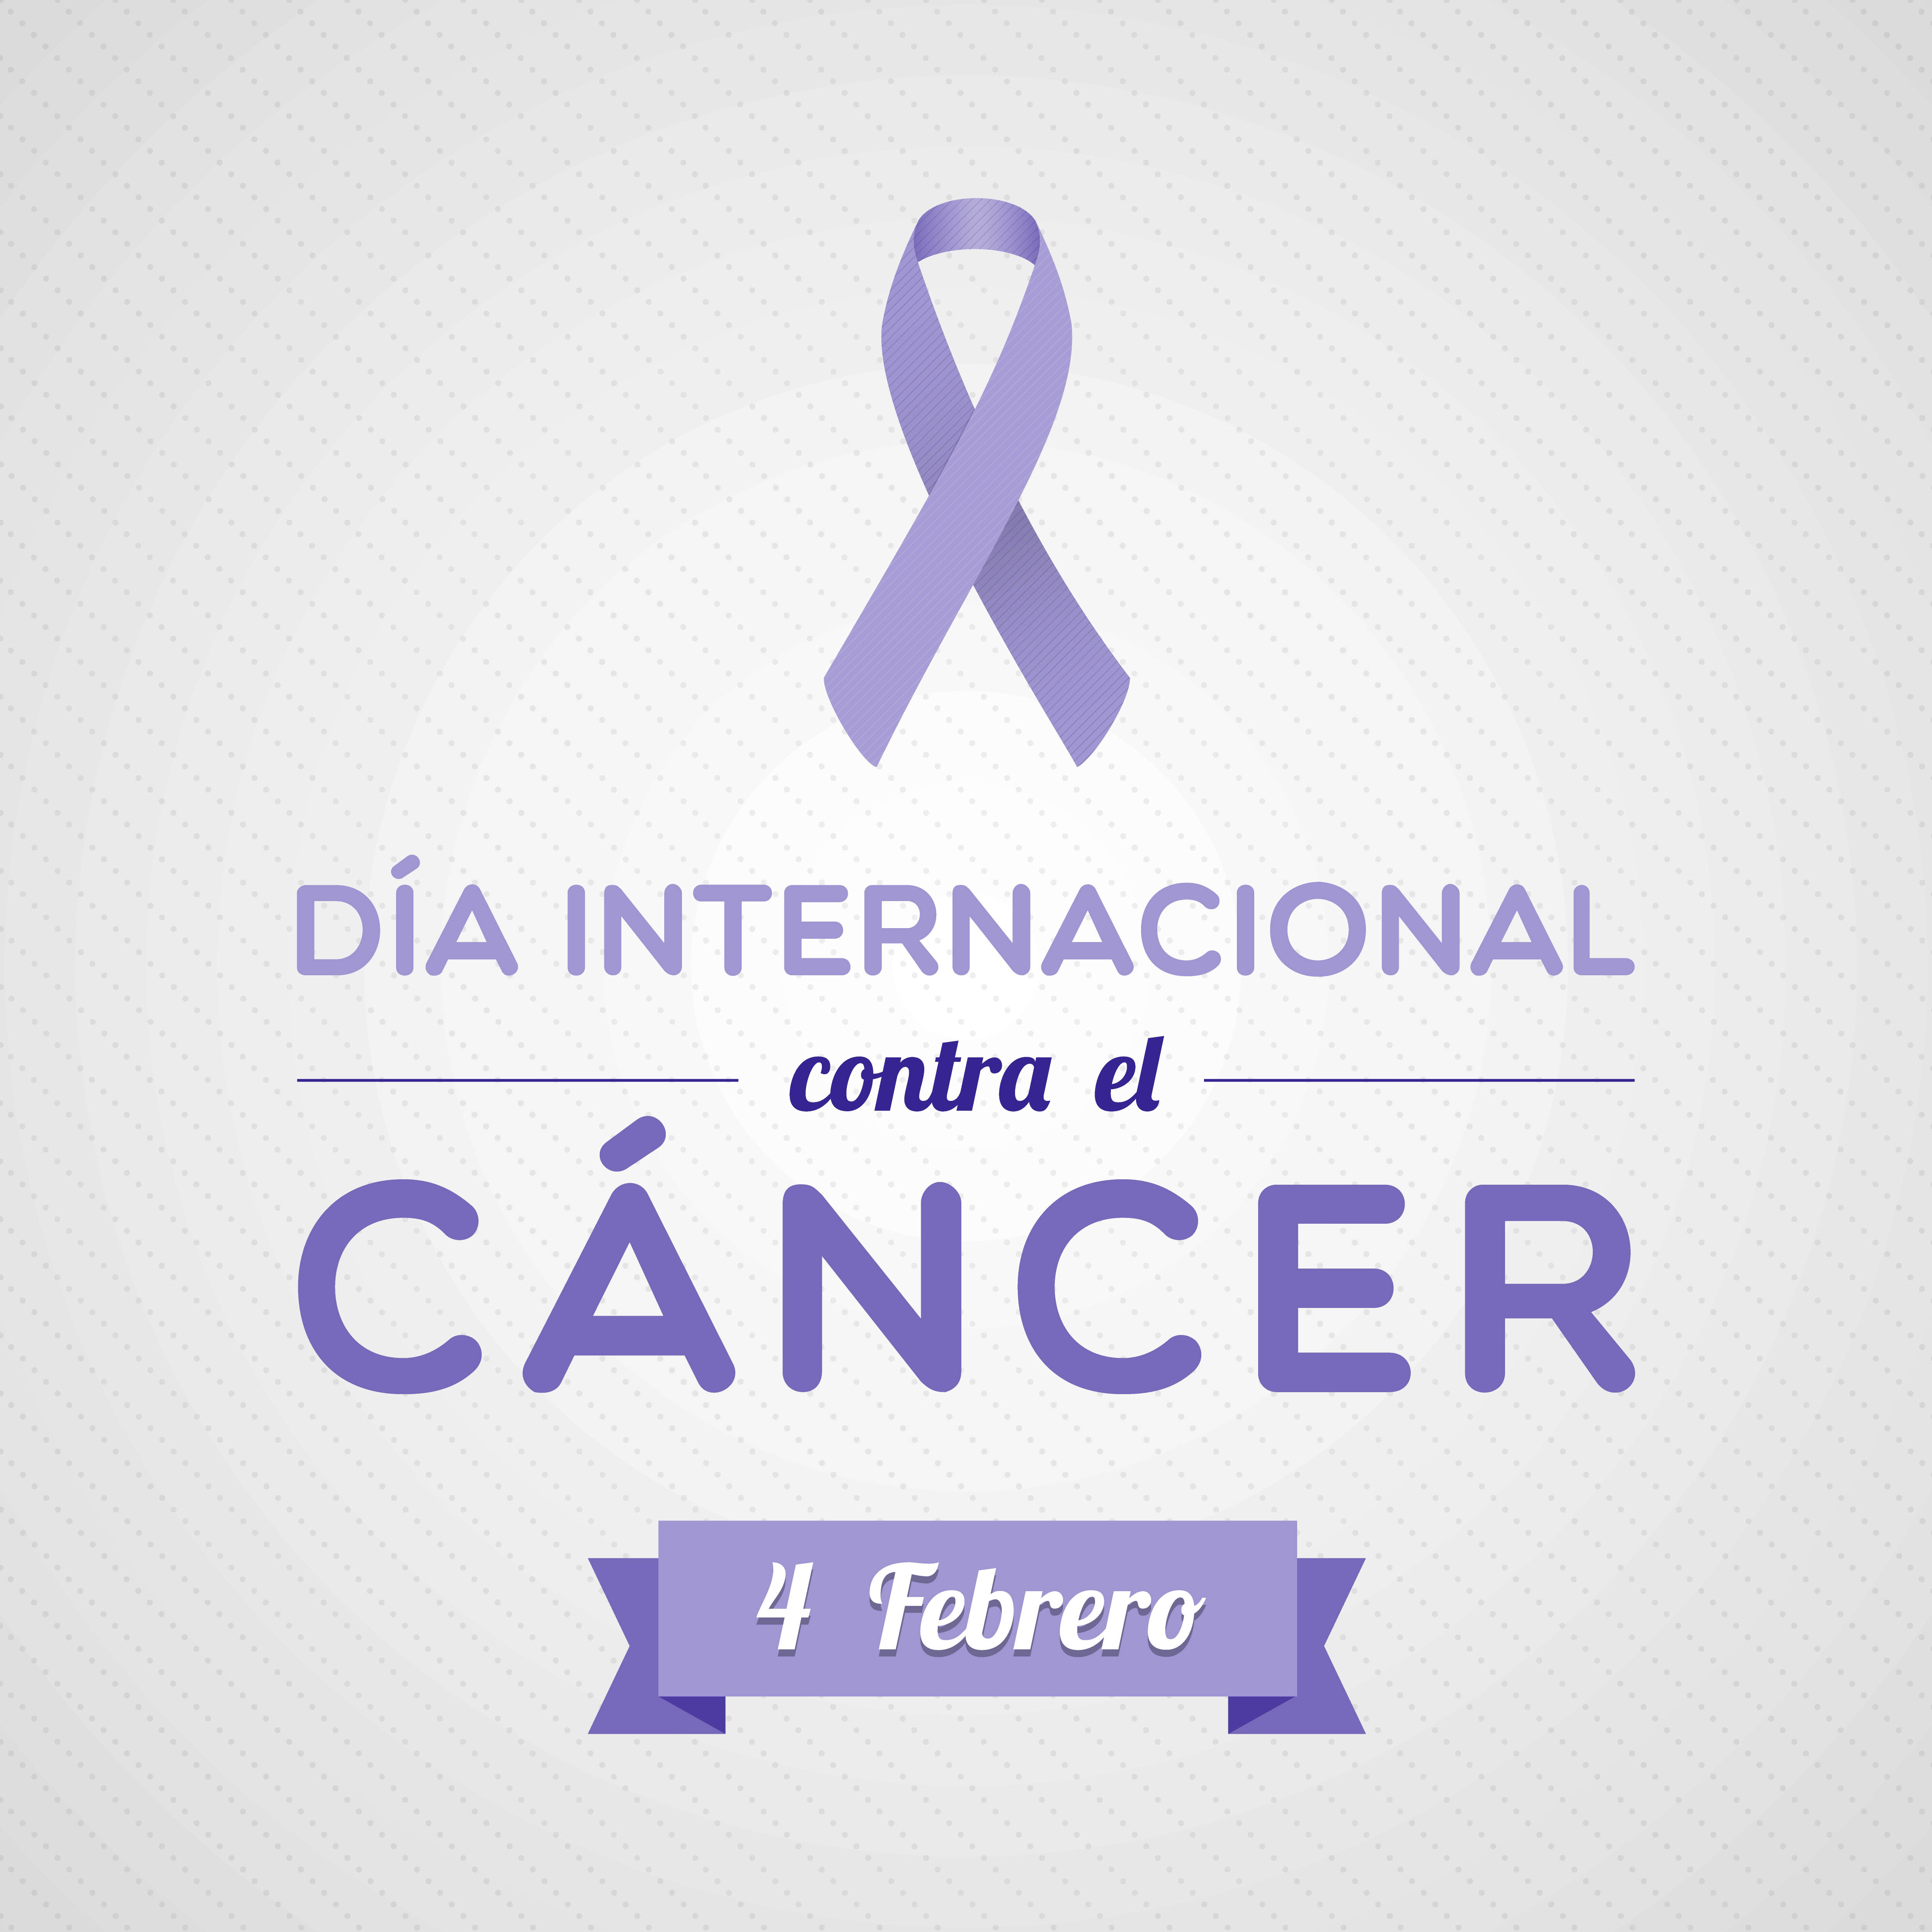 upn_cancer_dia